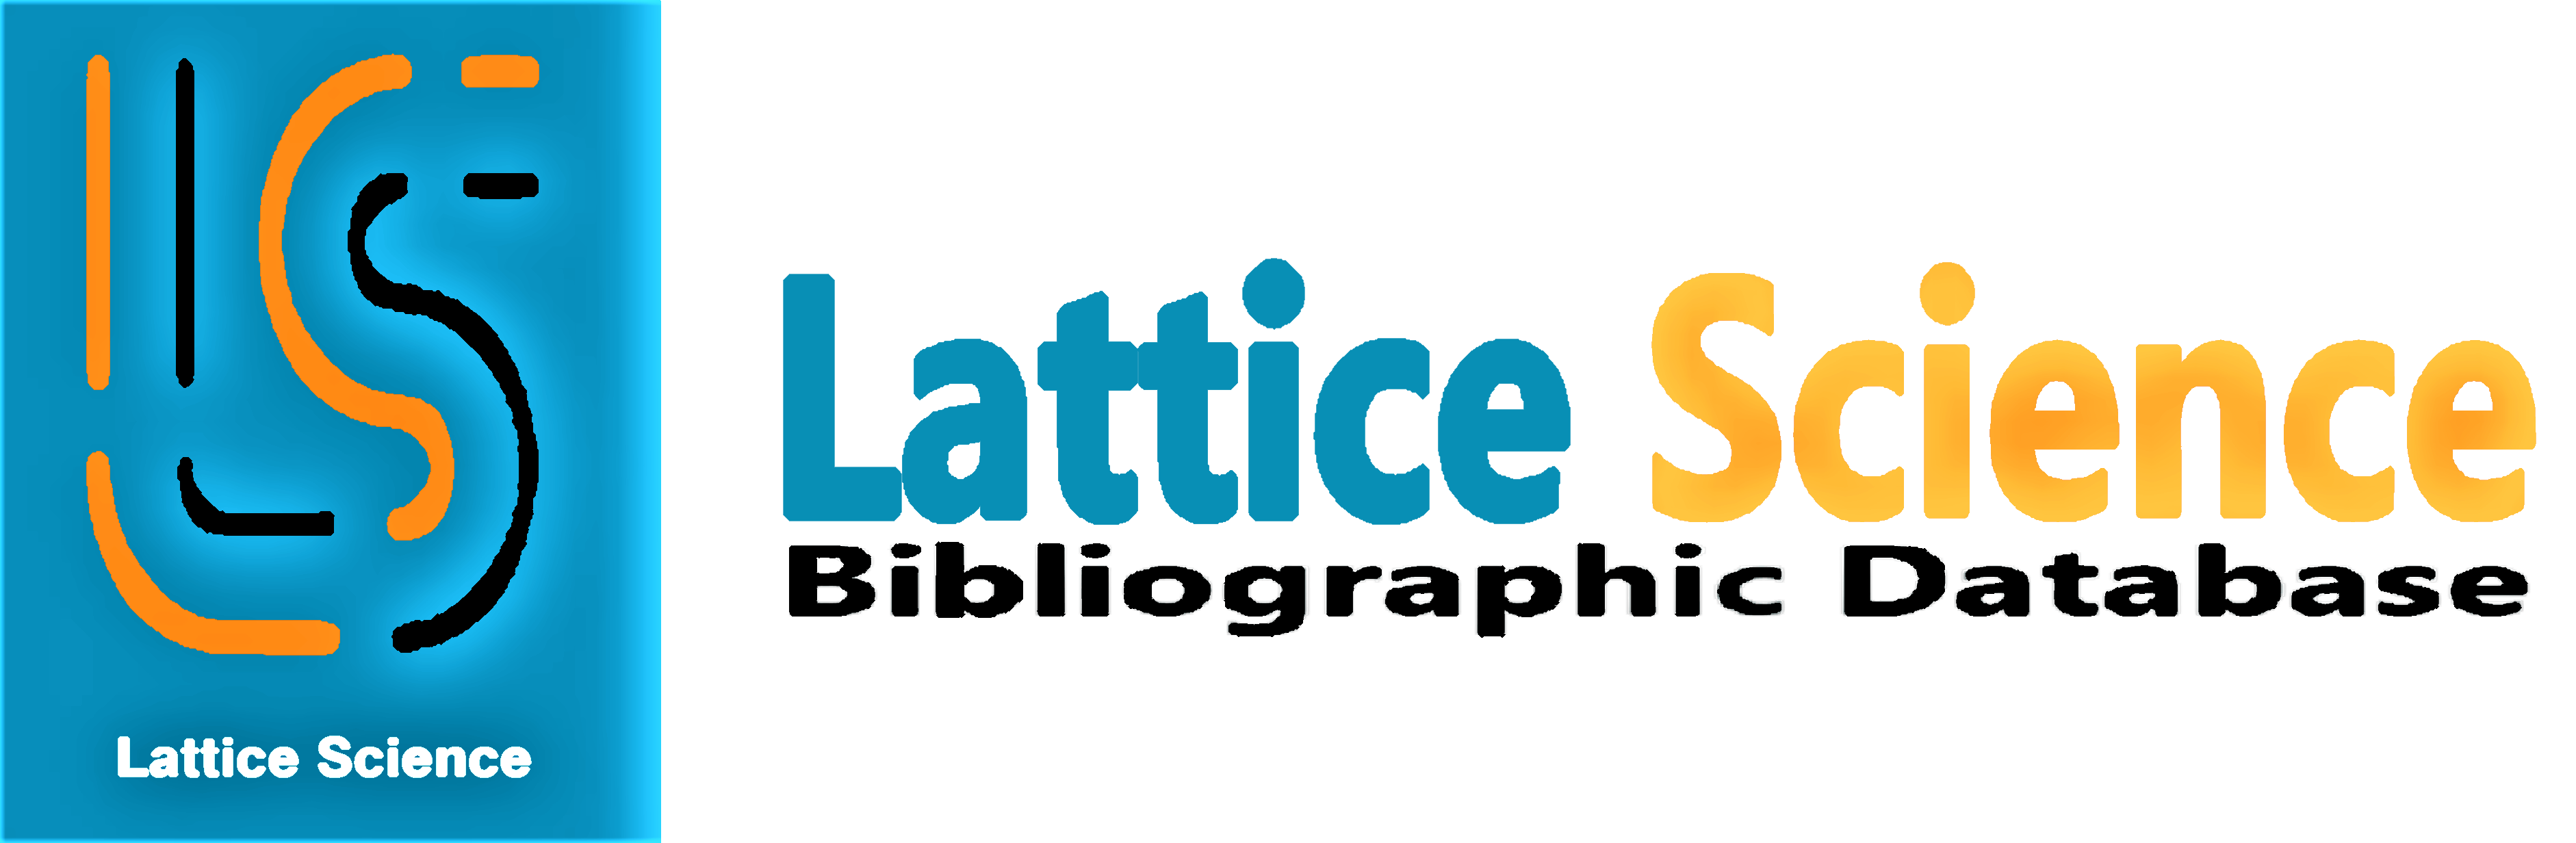 Lattice Science